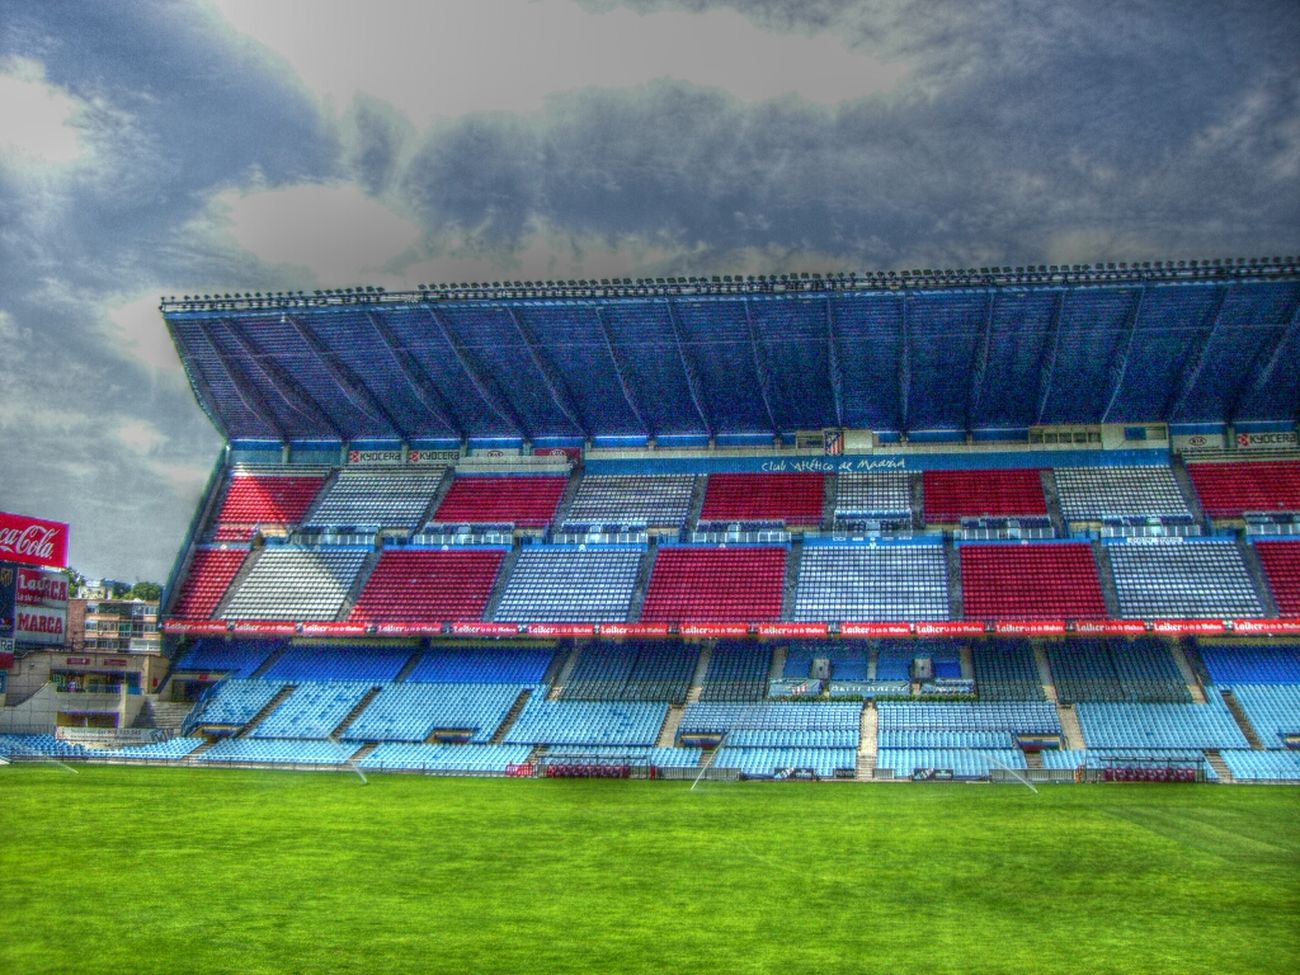 Steht 'ne Tribüne über der Stadtautobahn... Architecture Madrid Football Football Stadium Stadium Atleticomadrid Vicente Calderon HDR Sky And Clouds Pitch